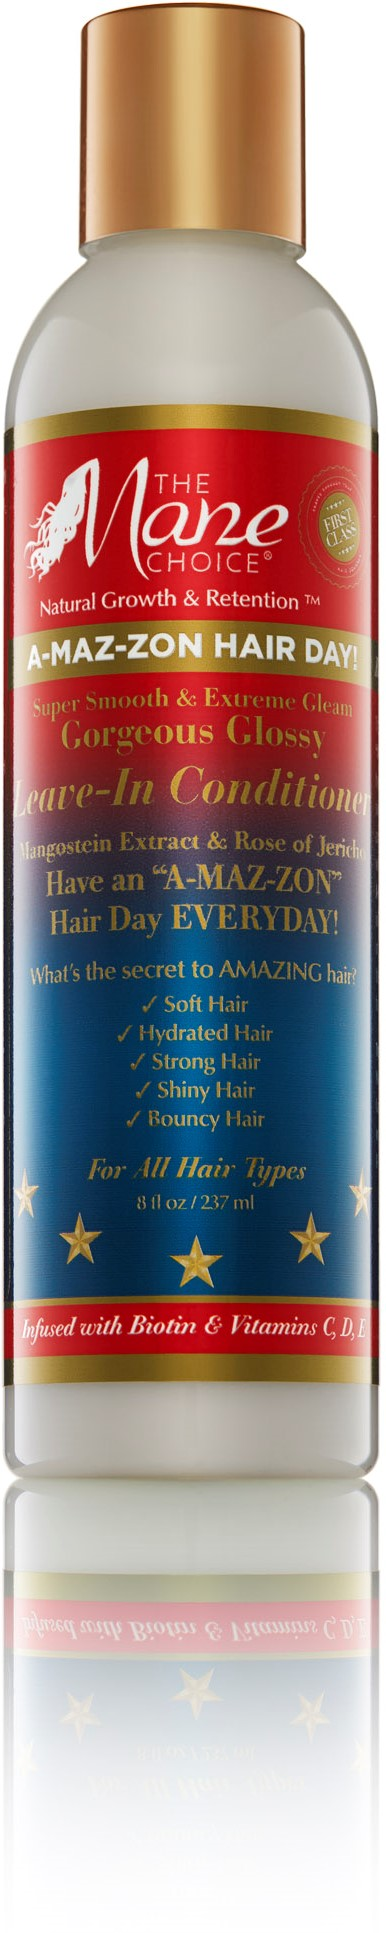 The Mane Choice A-Maz-Zon Hair Day Gorgeous Gloss Leave In Conditioner